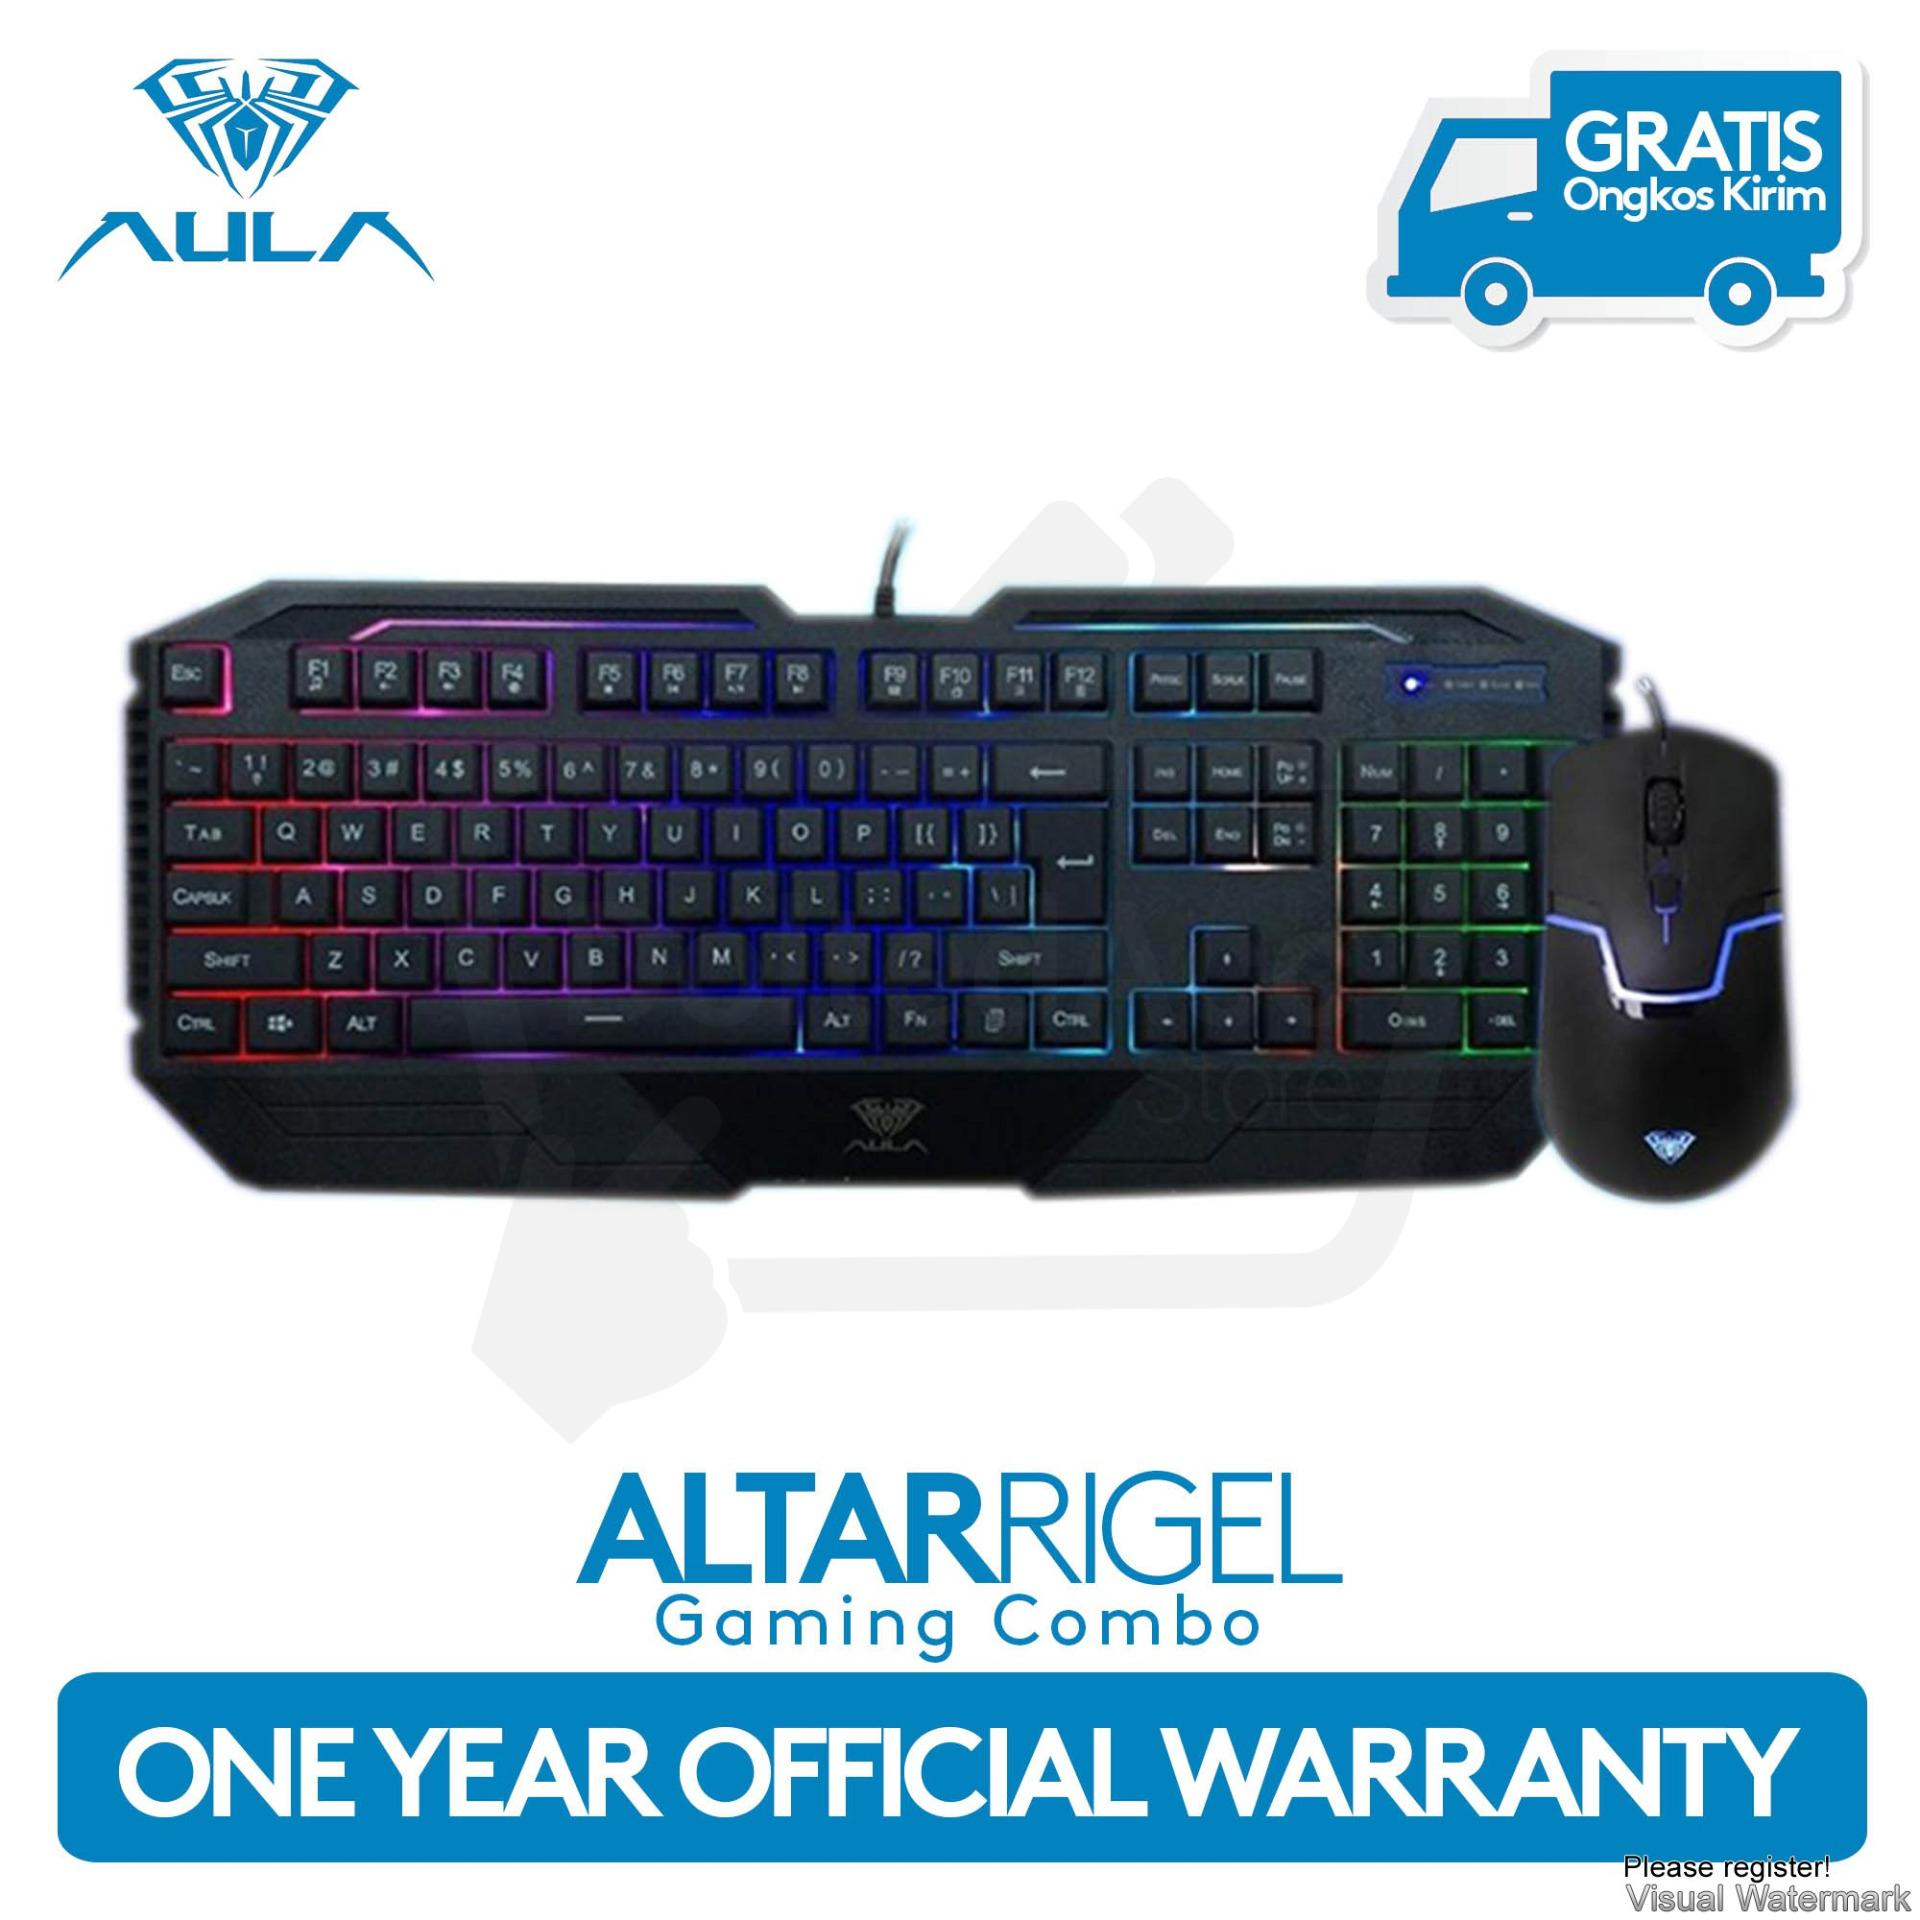 Jual Keyboard Gaming Terbaru Rexus K9tkl Fortress Aula Altar Rigel Wired And Mouse Combo With Led Backlit Hitam